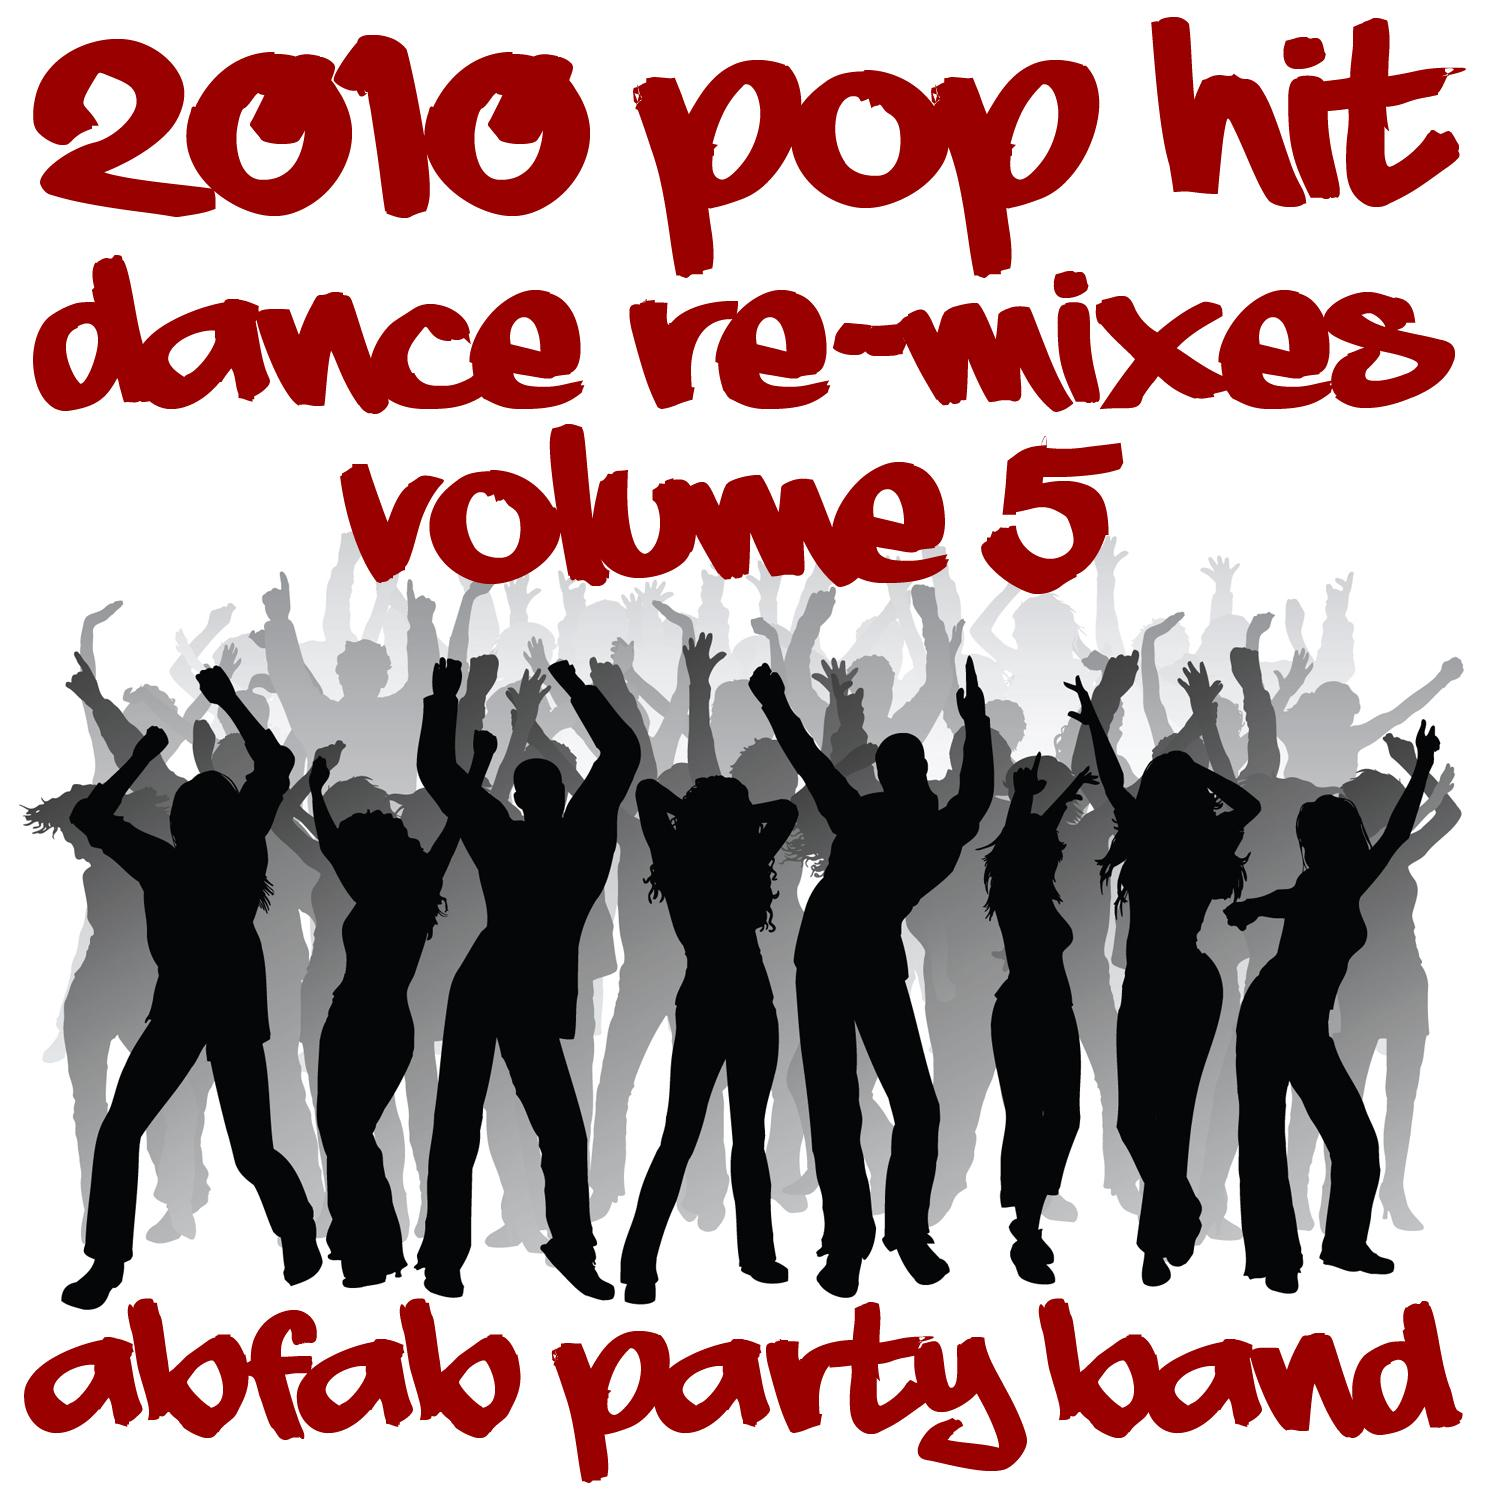 2010 Pop Hit Dance Re-Mixes Vol. 5